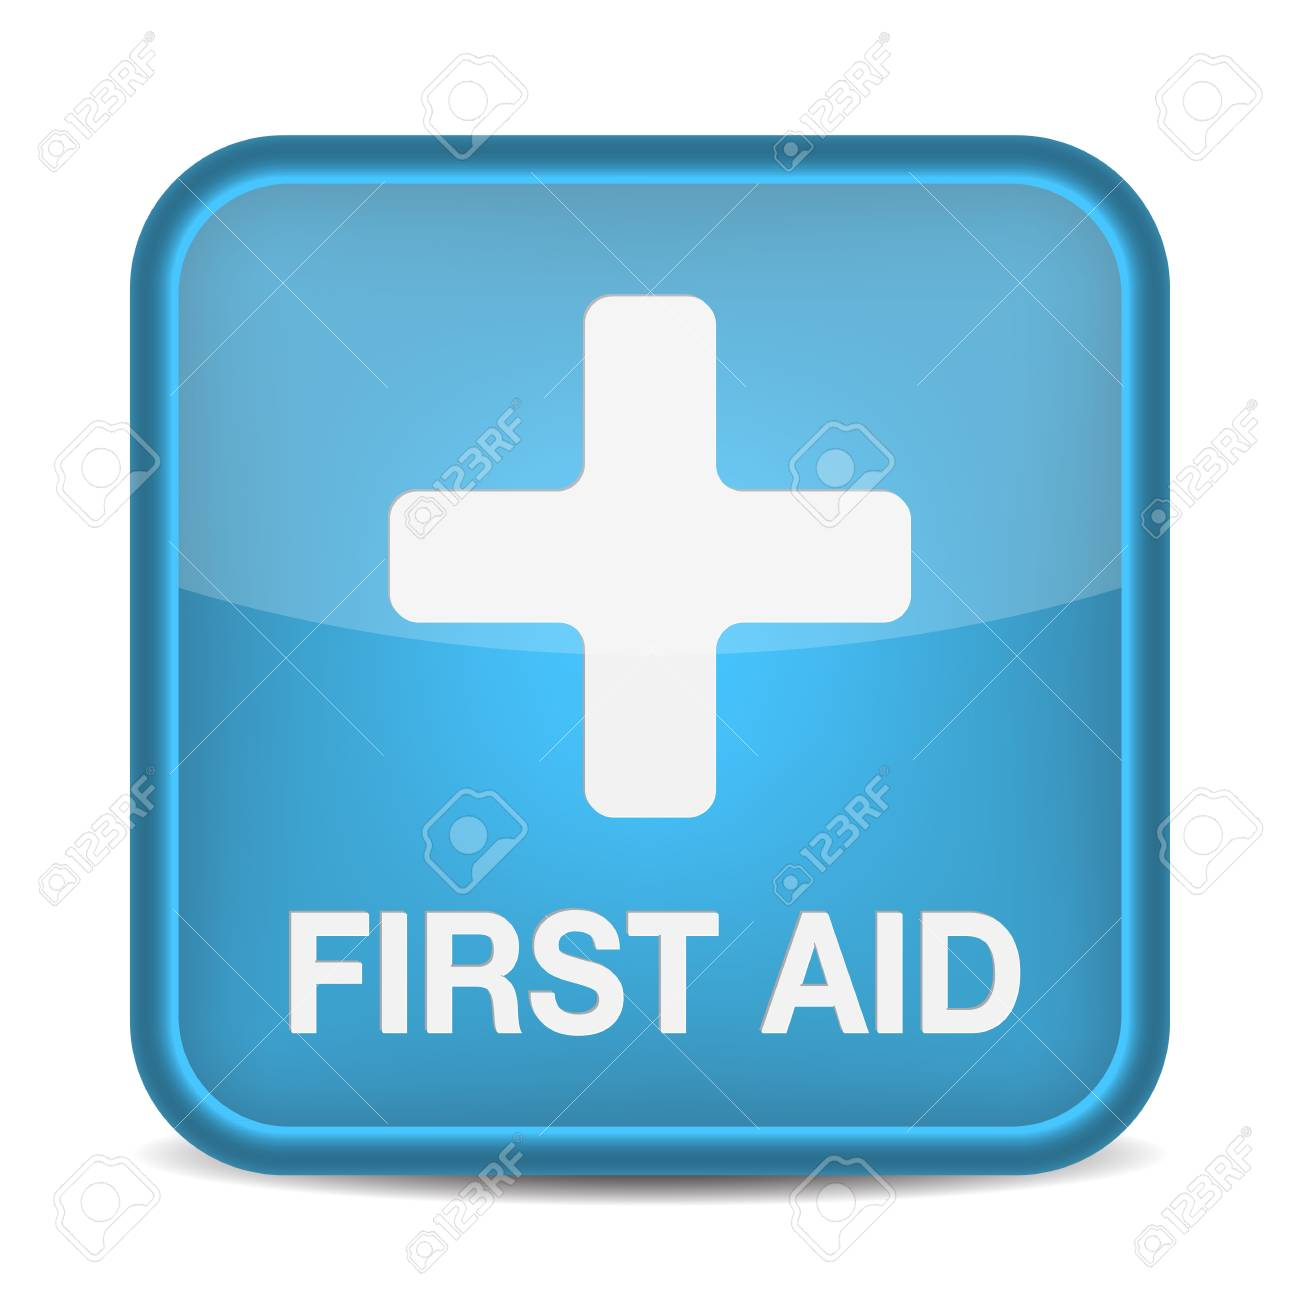 First aid medical button sign isolated on white. illustration Stock Vector - 17885257